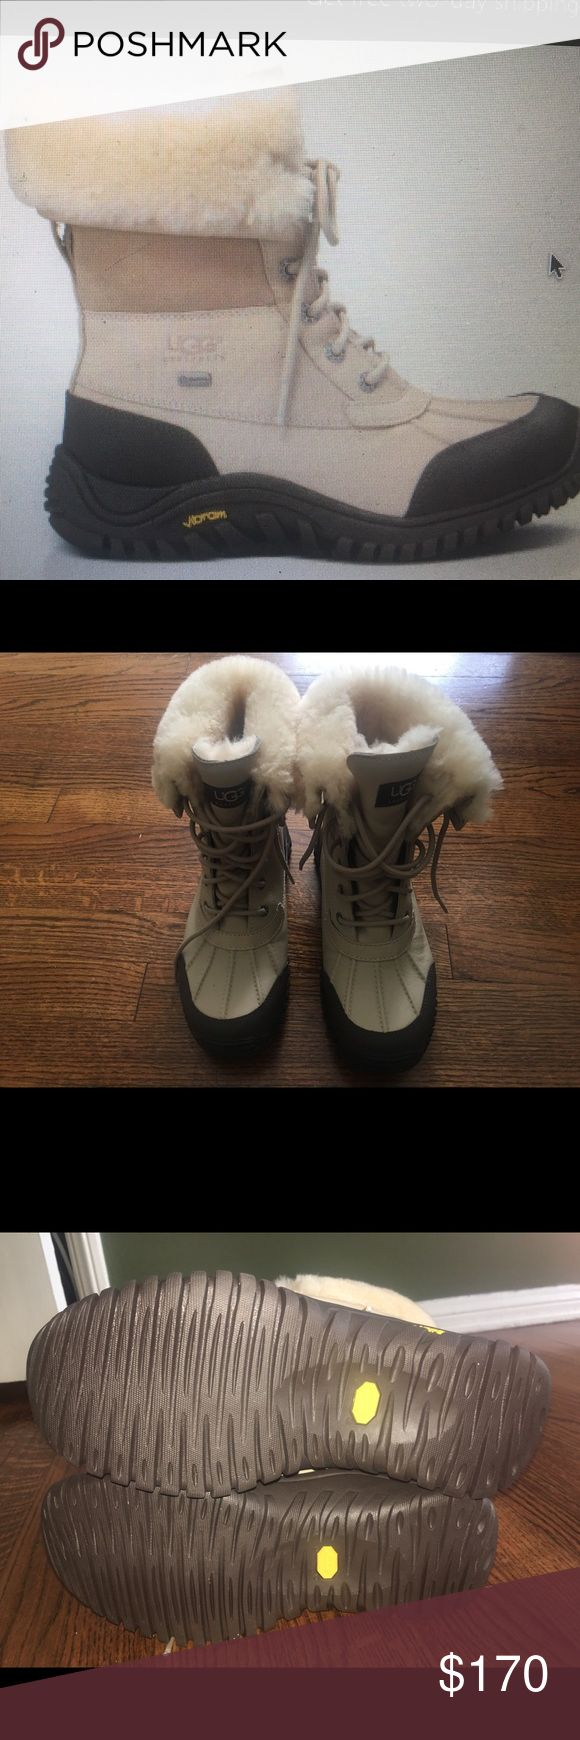 Ugg Adirondack Boot 11 color Sand size7/8 Like new beautiful snow boots - I didn't wear them as they are tight on me (I have a wide foot) I am also normally a 7 - these are an 8 but you might want to go a size up UGG Shoes Winter & Rain Boots